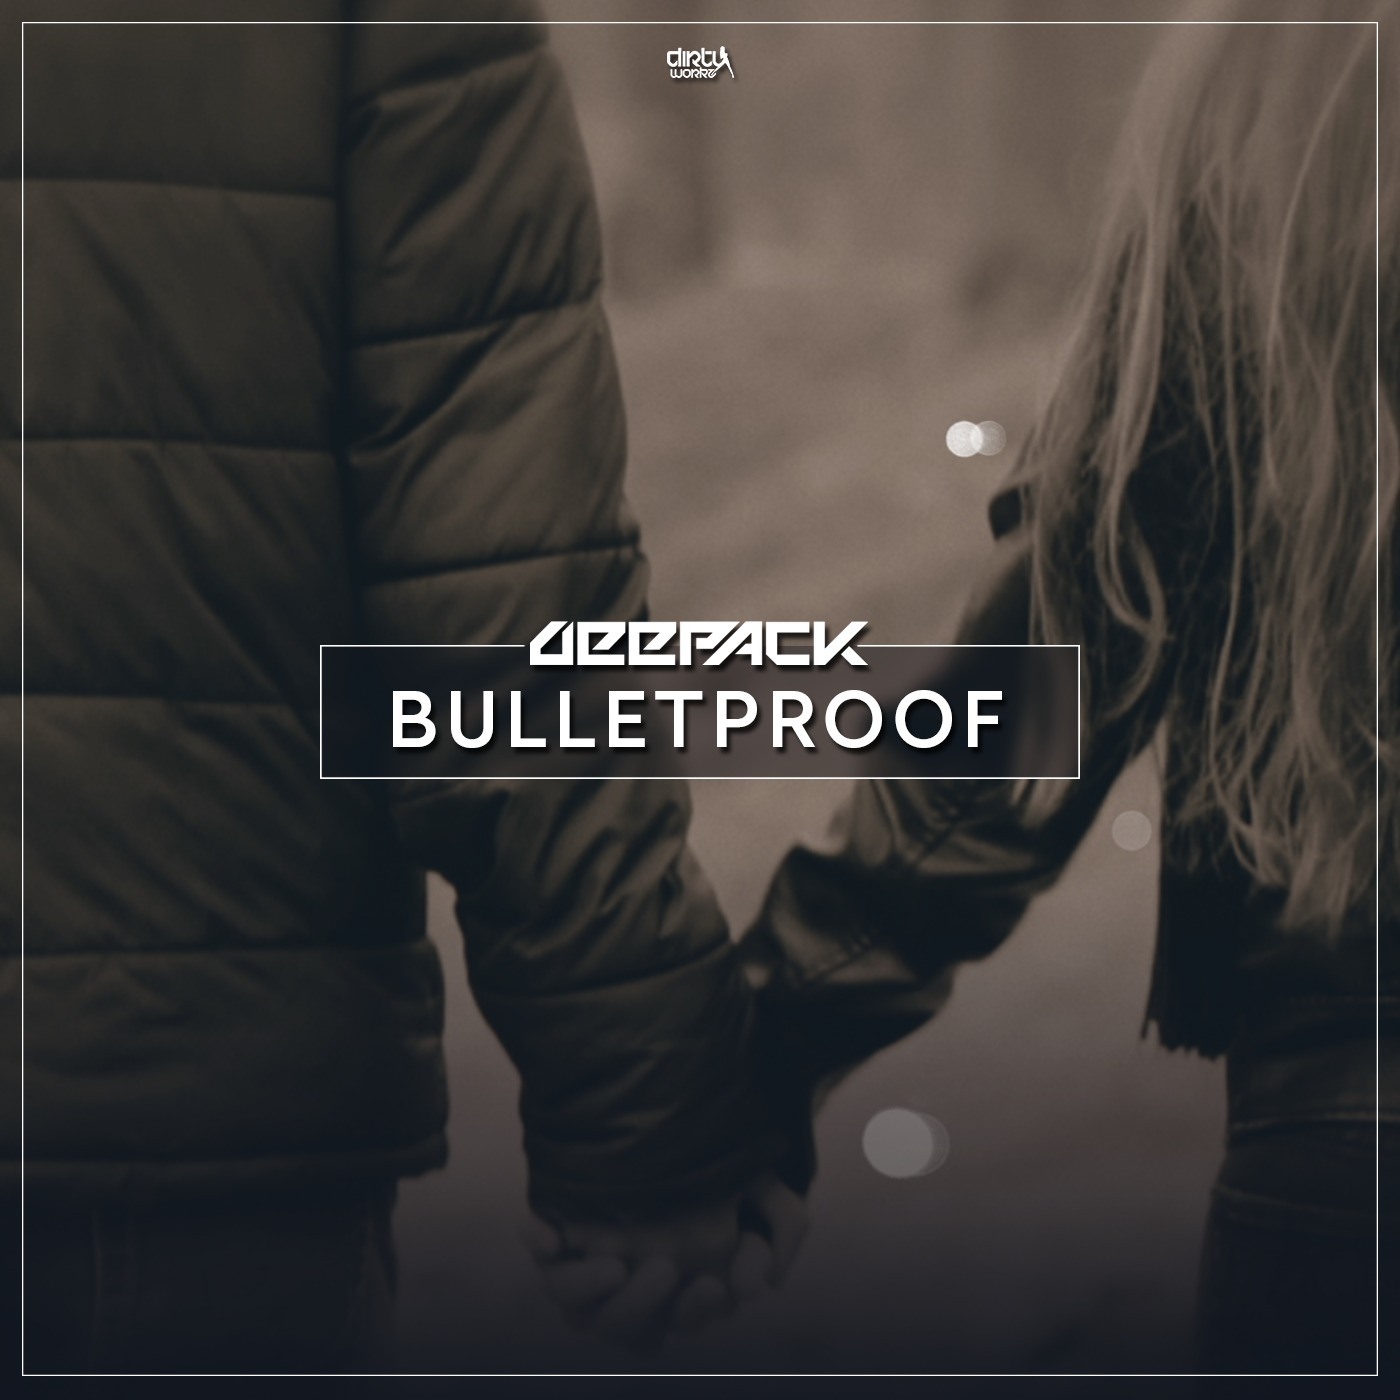 Deepack ft Robin Valo - Bulletproof [DIRTY WORKZ] DWX426